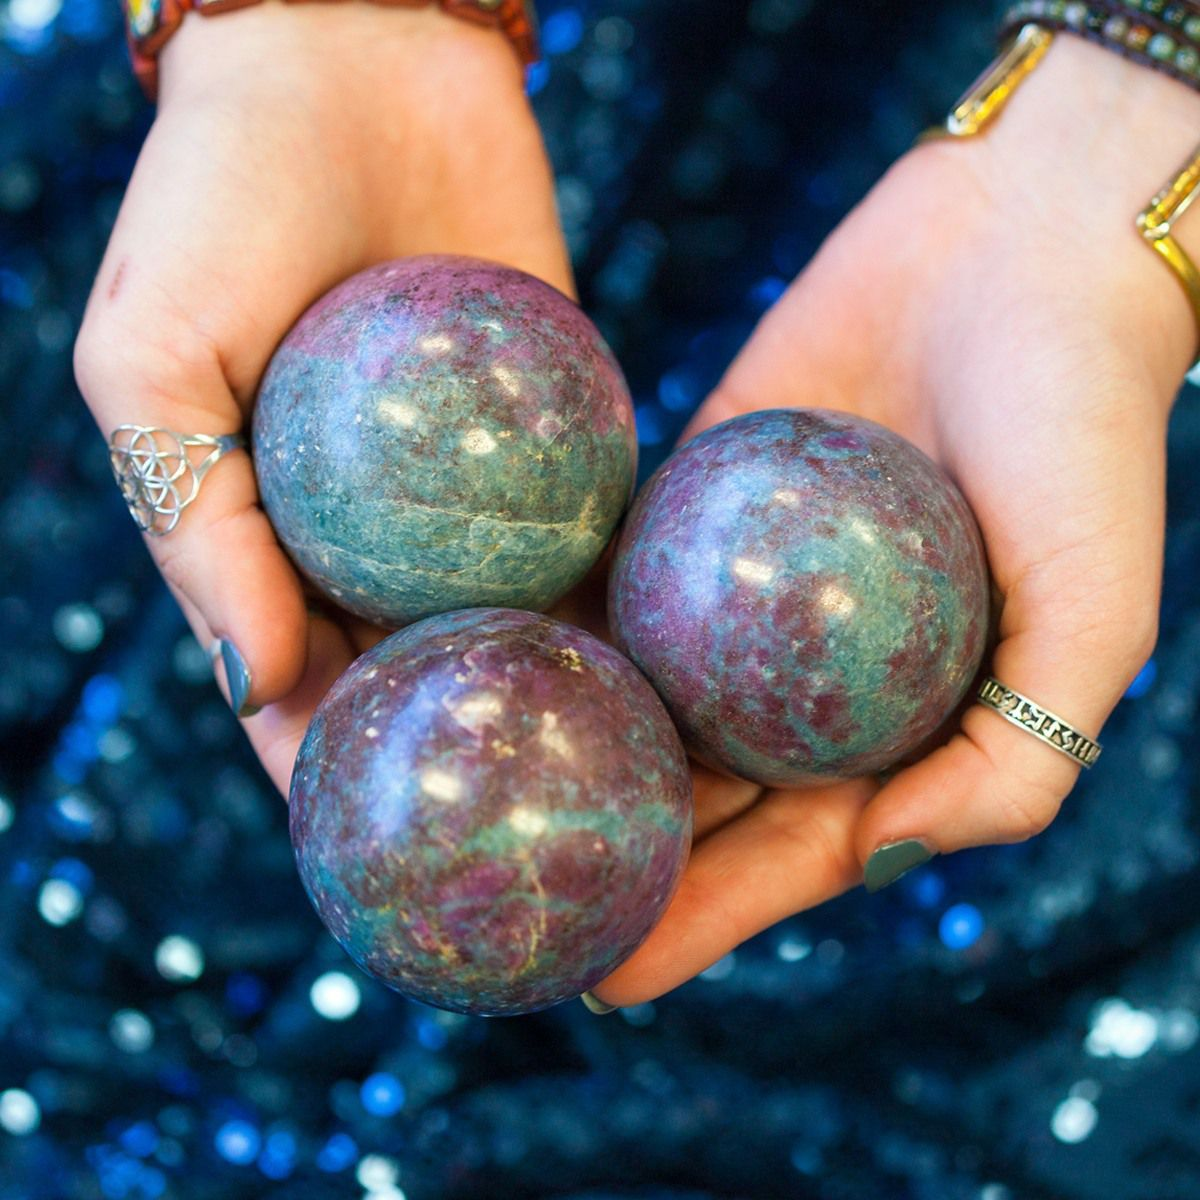 How to Make and Use Magical Moon Water | Ruby in kyanite ...